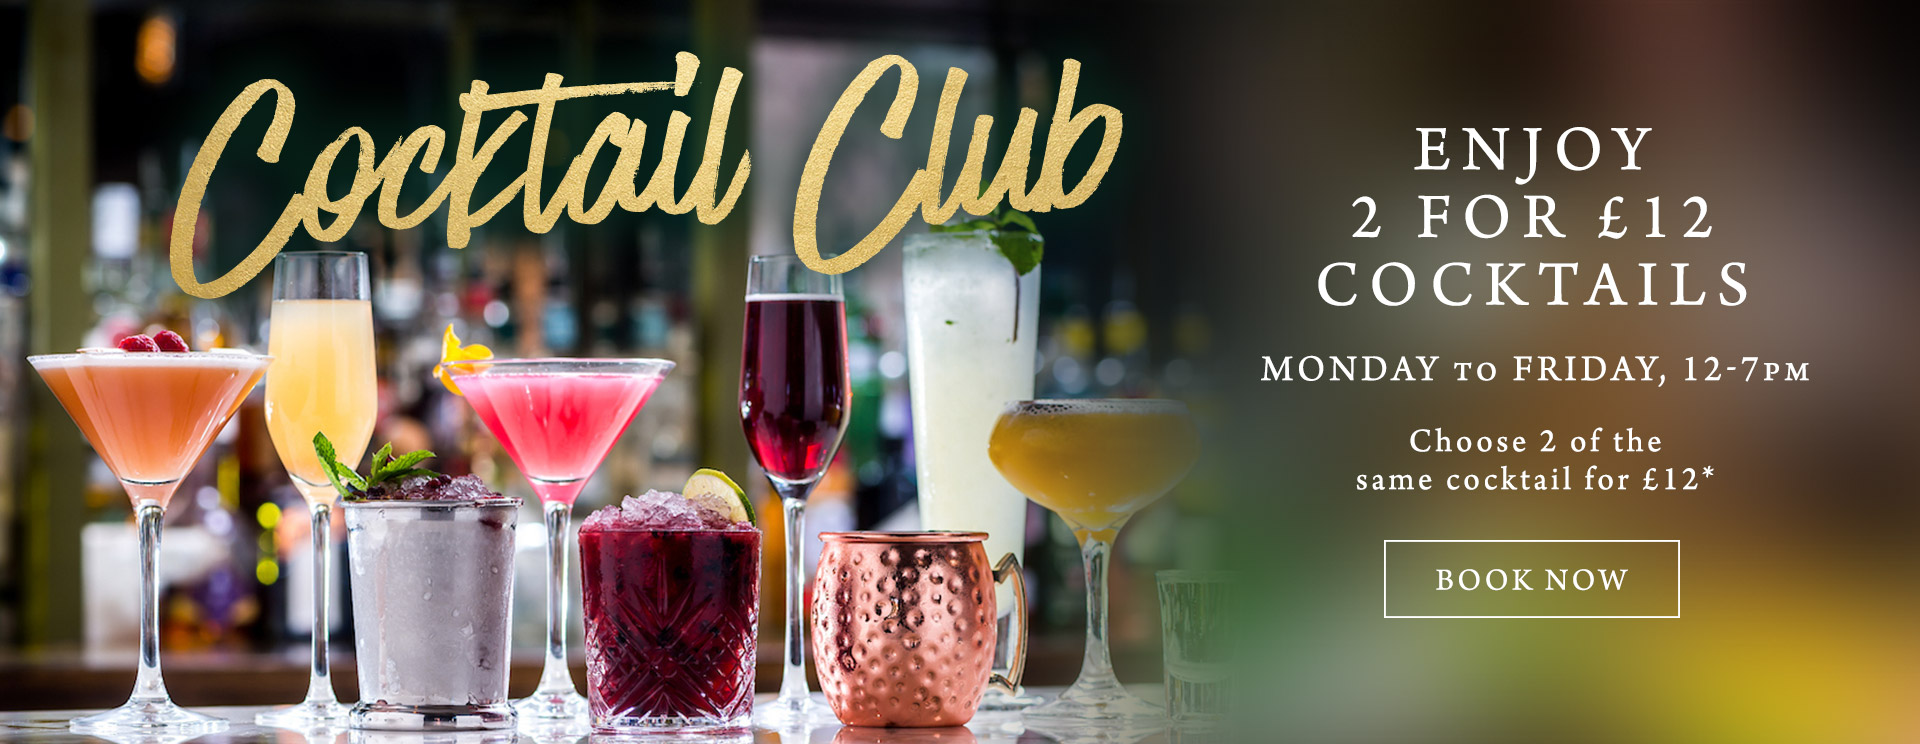 2 for £12 cocktails at The Old Cottage